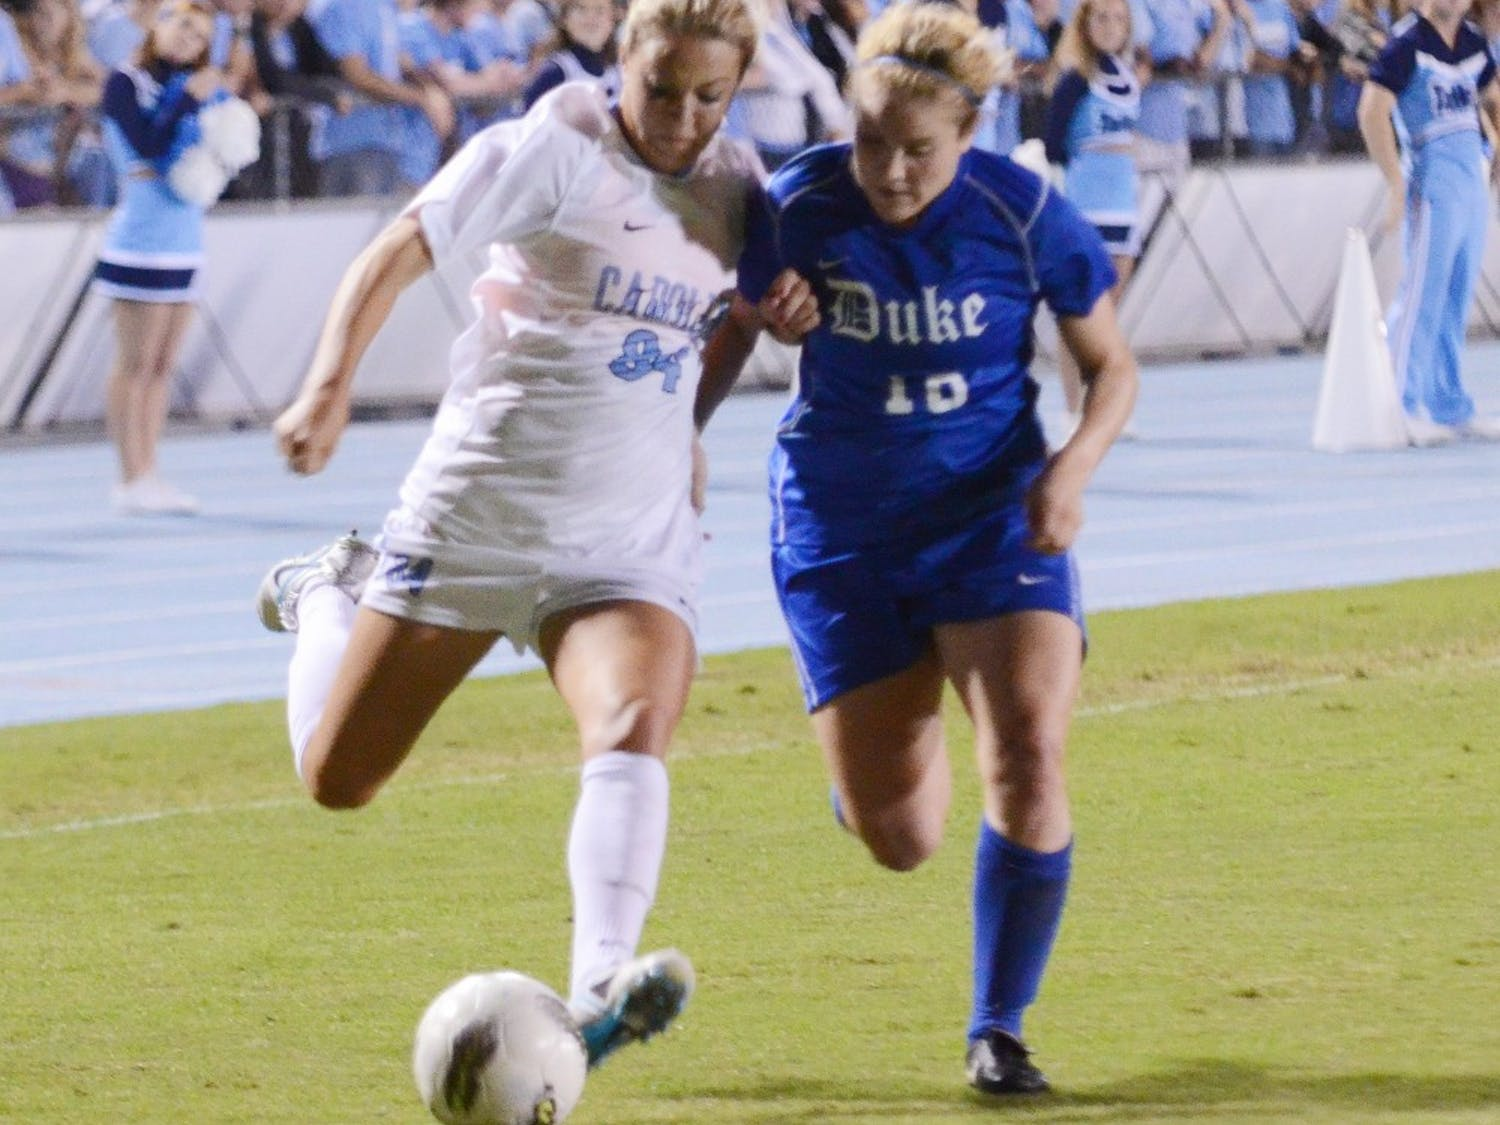 Courtney Jones fights off a Duke defender as she dribbles the ball in North Carolina's match with Duke. The Tar Heels beat the Blue Devils 1-0.